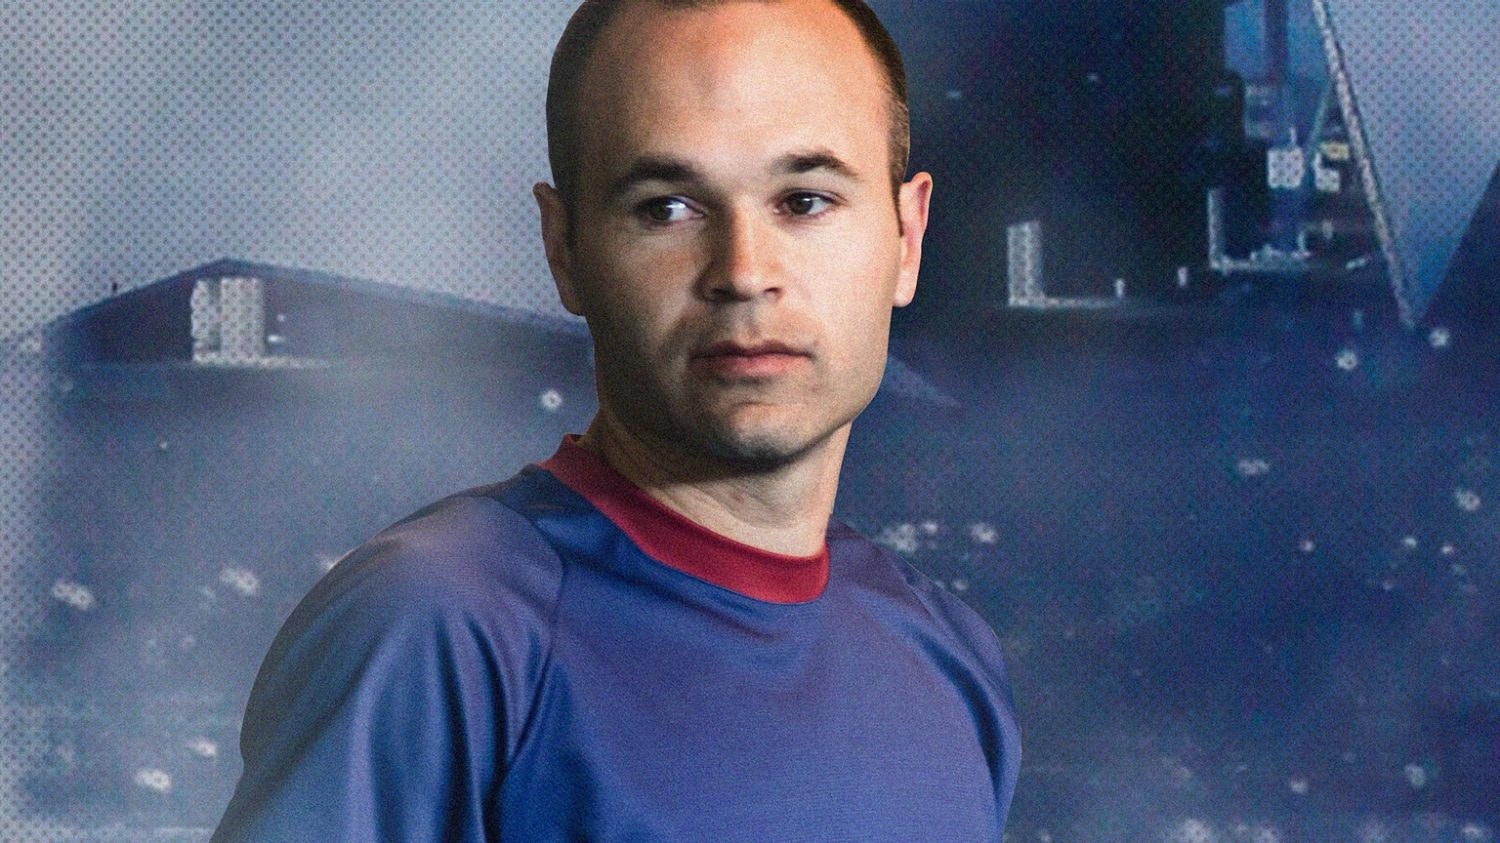 Experience Nissan - UEFA Champions League ambassador - Andres Iniesta